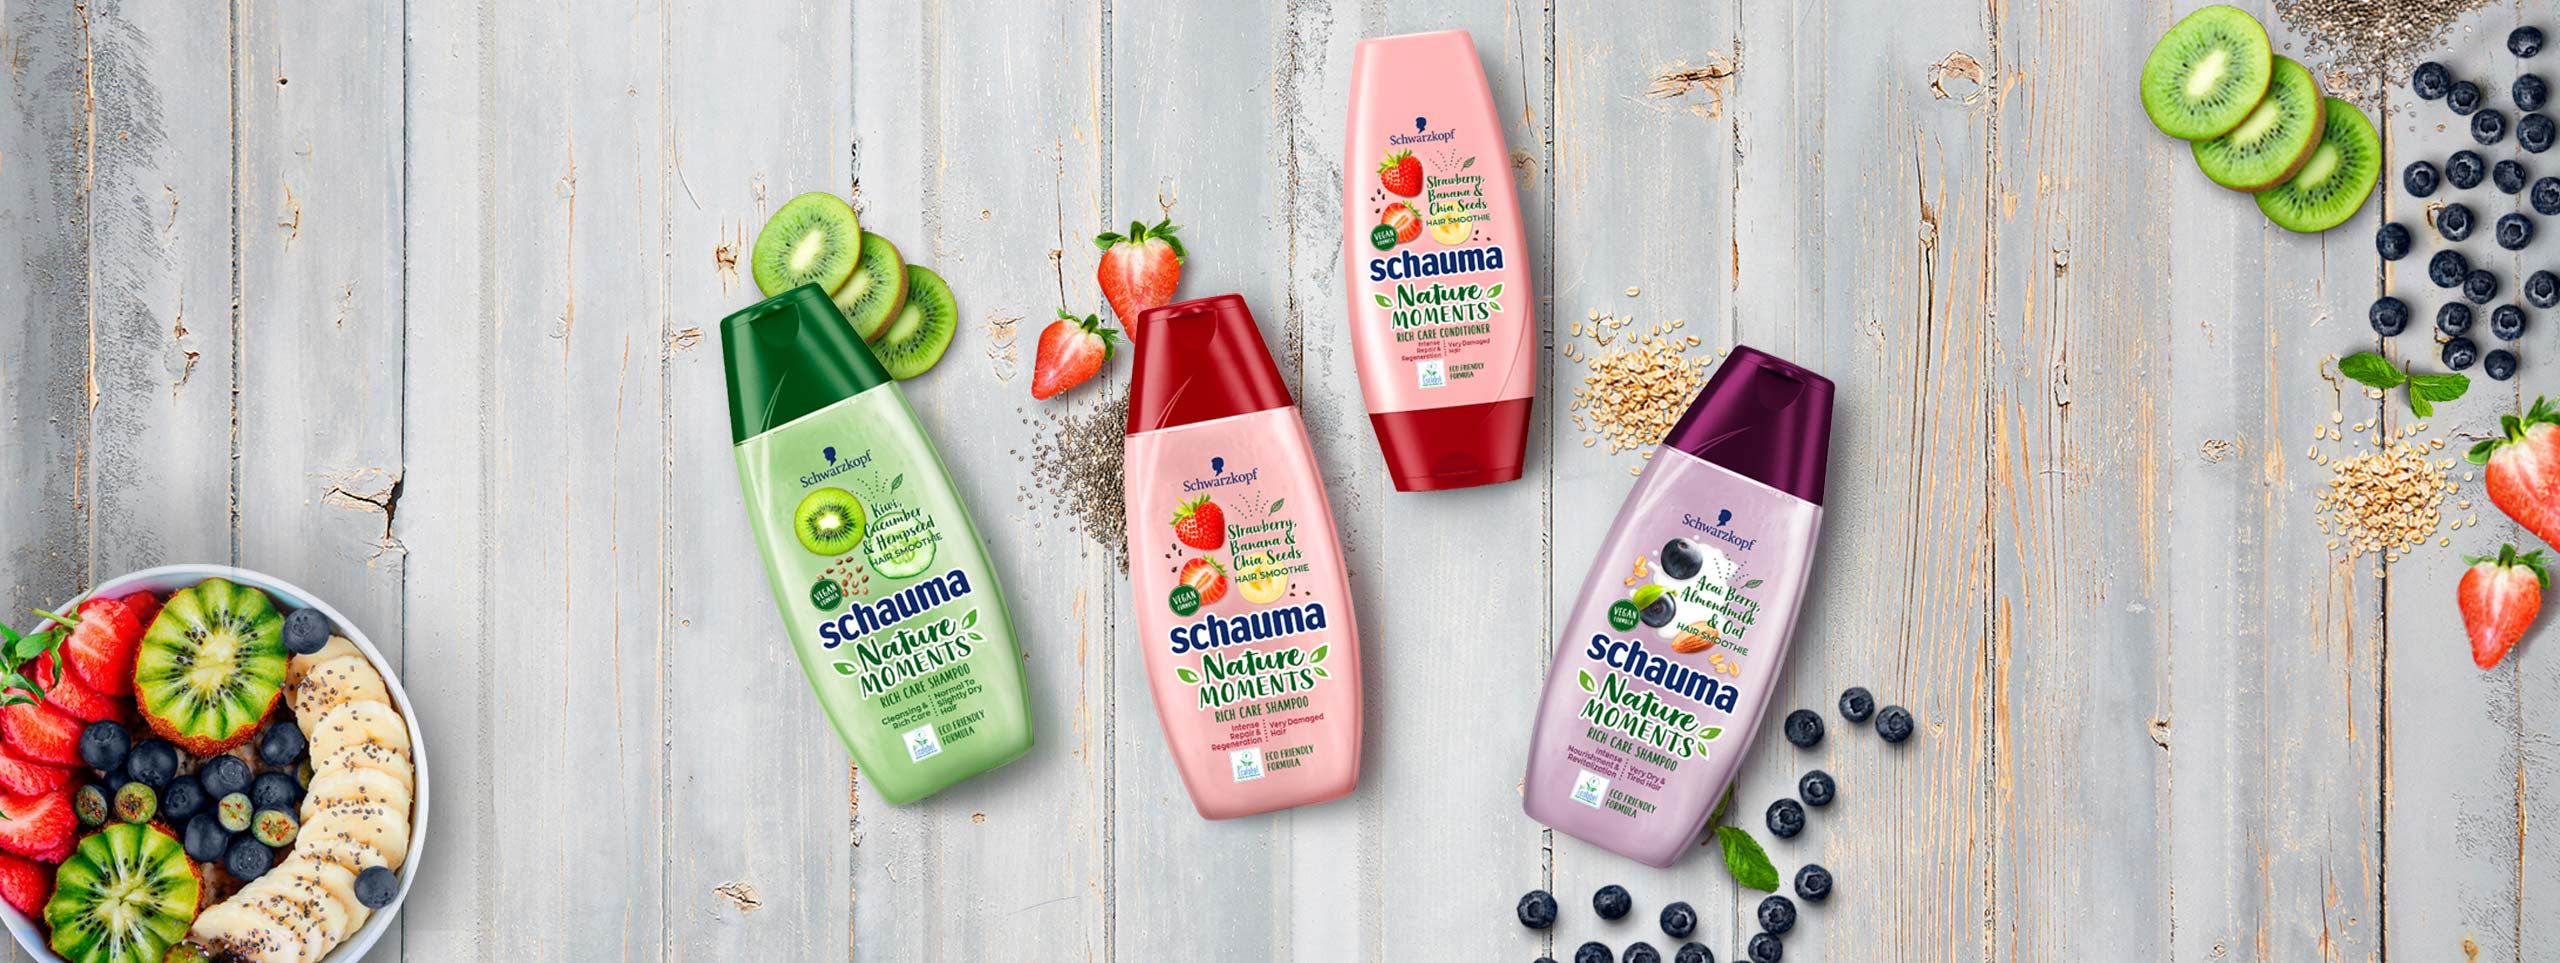 schauma-hair-smoothie-2560x963